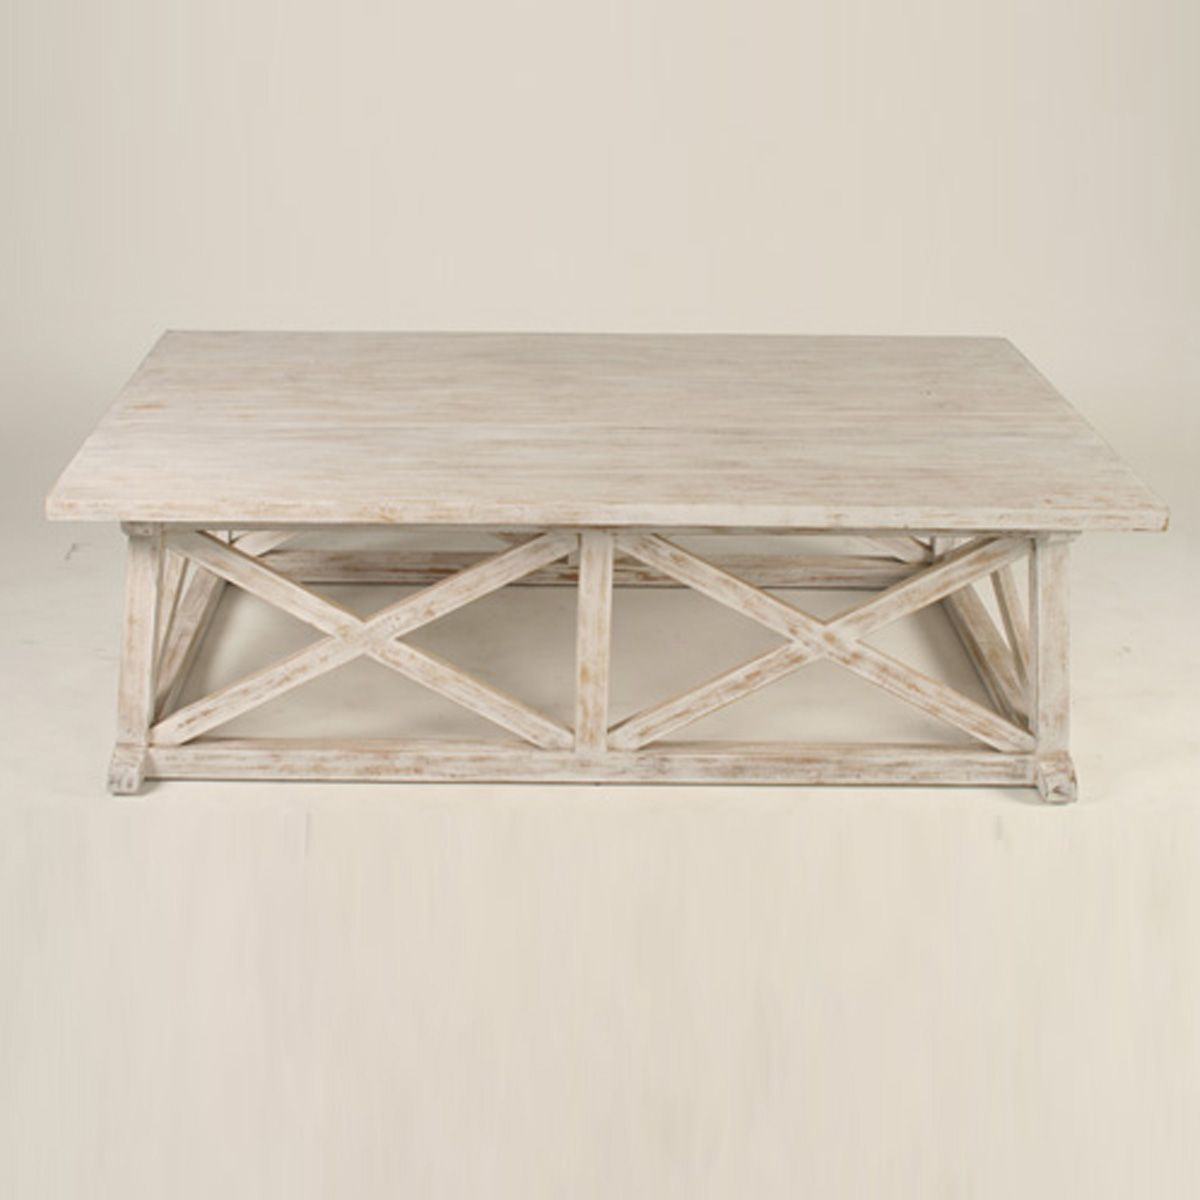 Wood coffee tables - Hampton White Washed . Mahogany Coffee Table . Interior Design